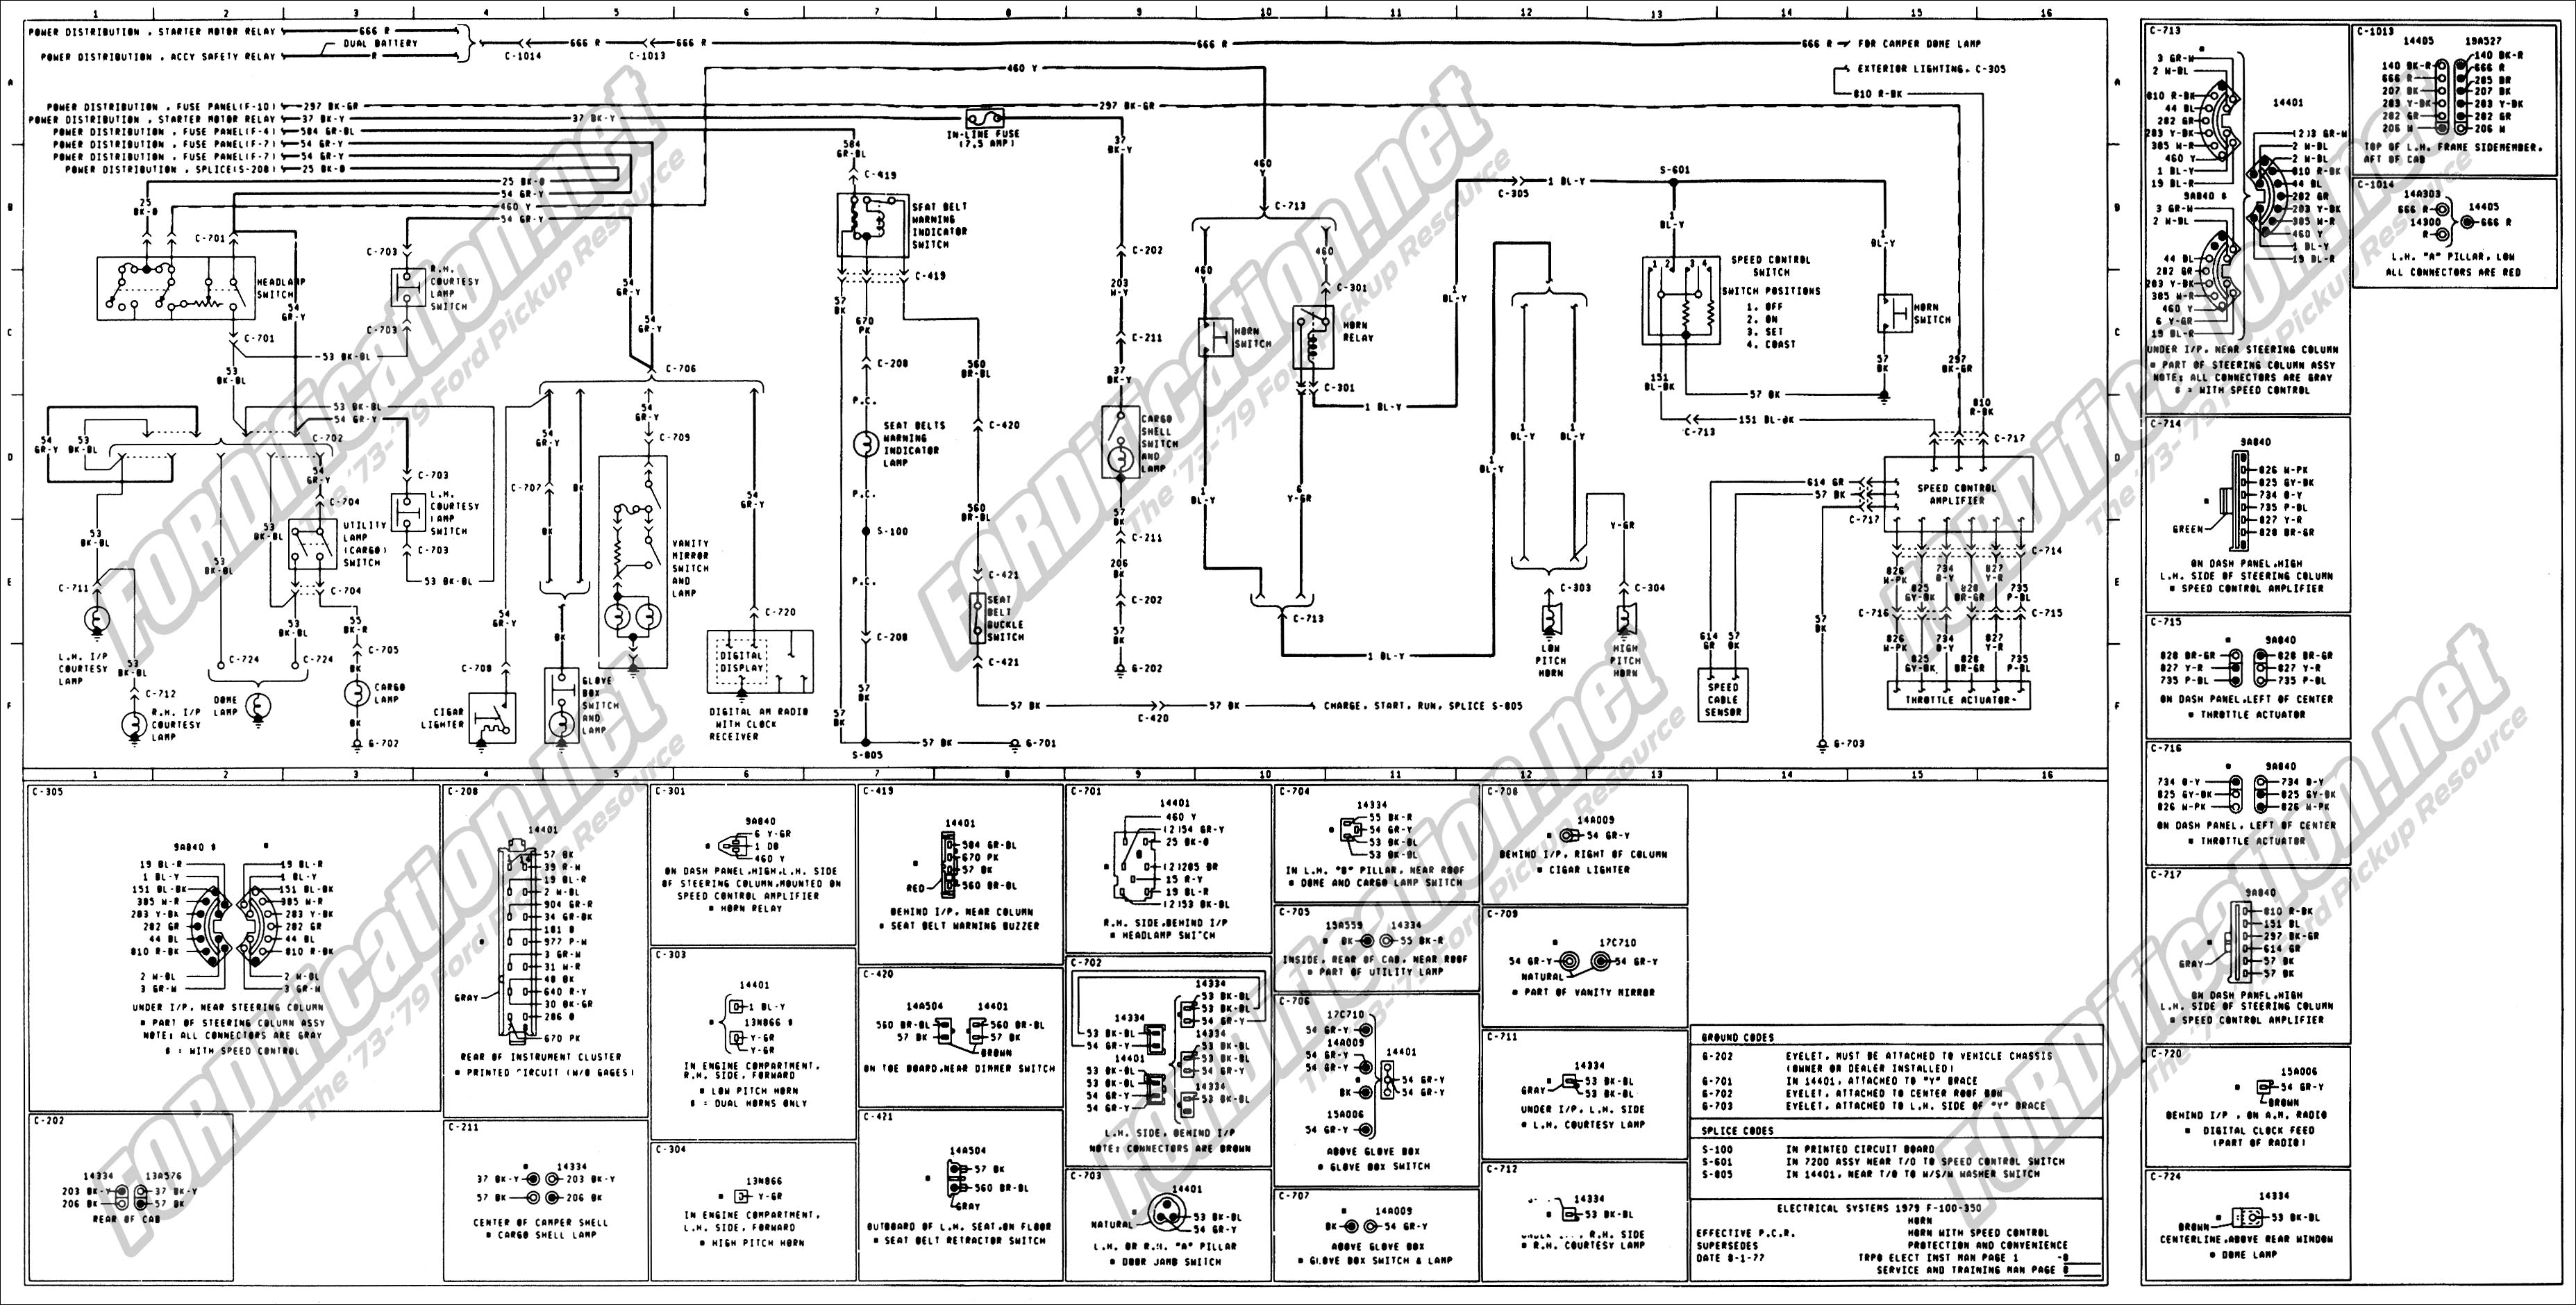 1978 Ford Bronco Wiring Diagram Schematic Diagrams Secura Key 1973 1979 Truck Schematics Fordification Net Rh Alternator F 250